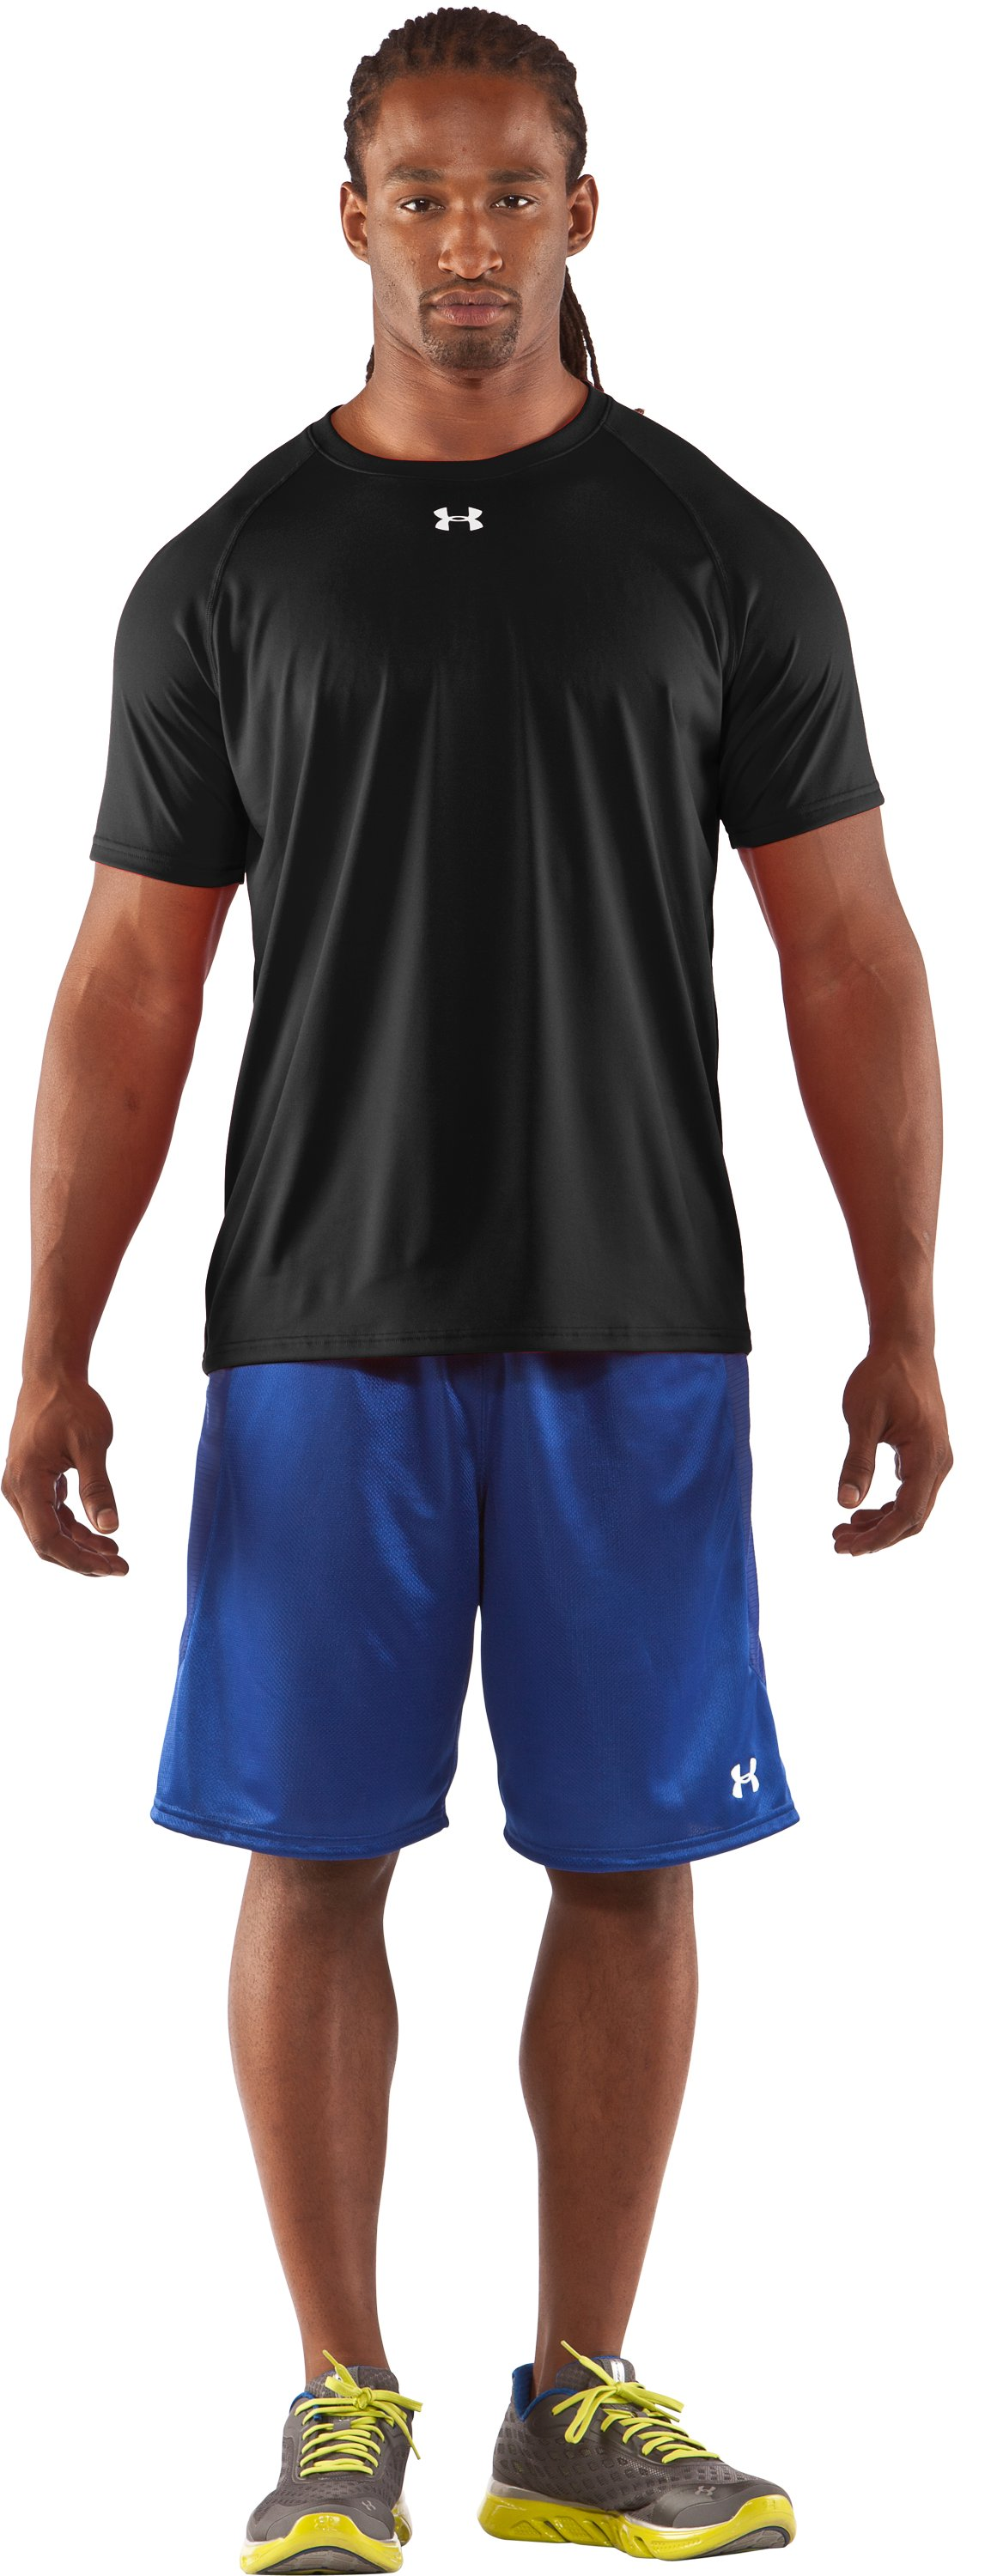 NWT Under Armour Loose Fit Black & Grey Men Short Sleeve ...